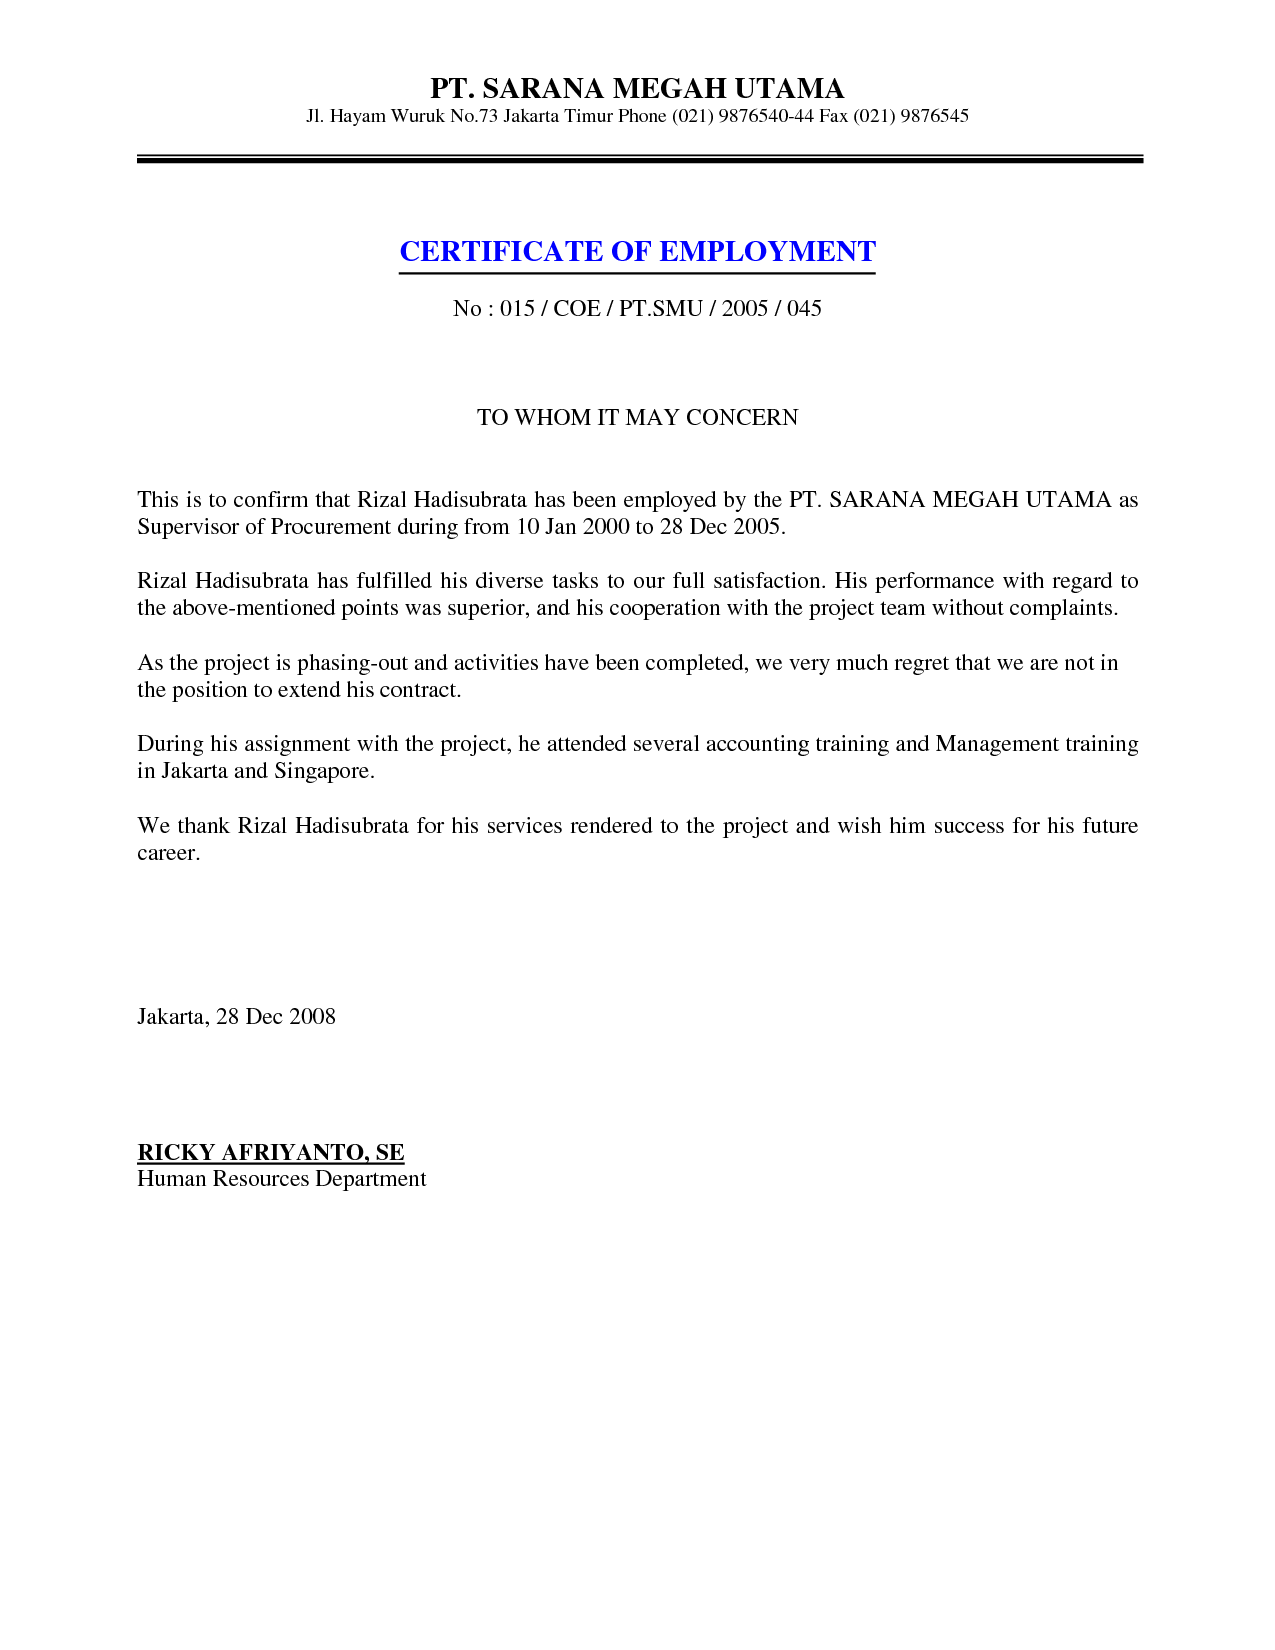 certification of employment letter template paso evolist co